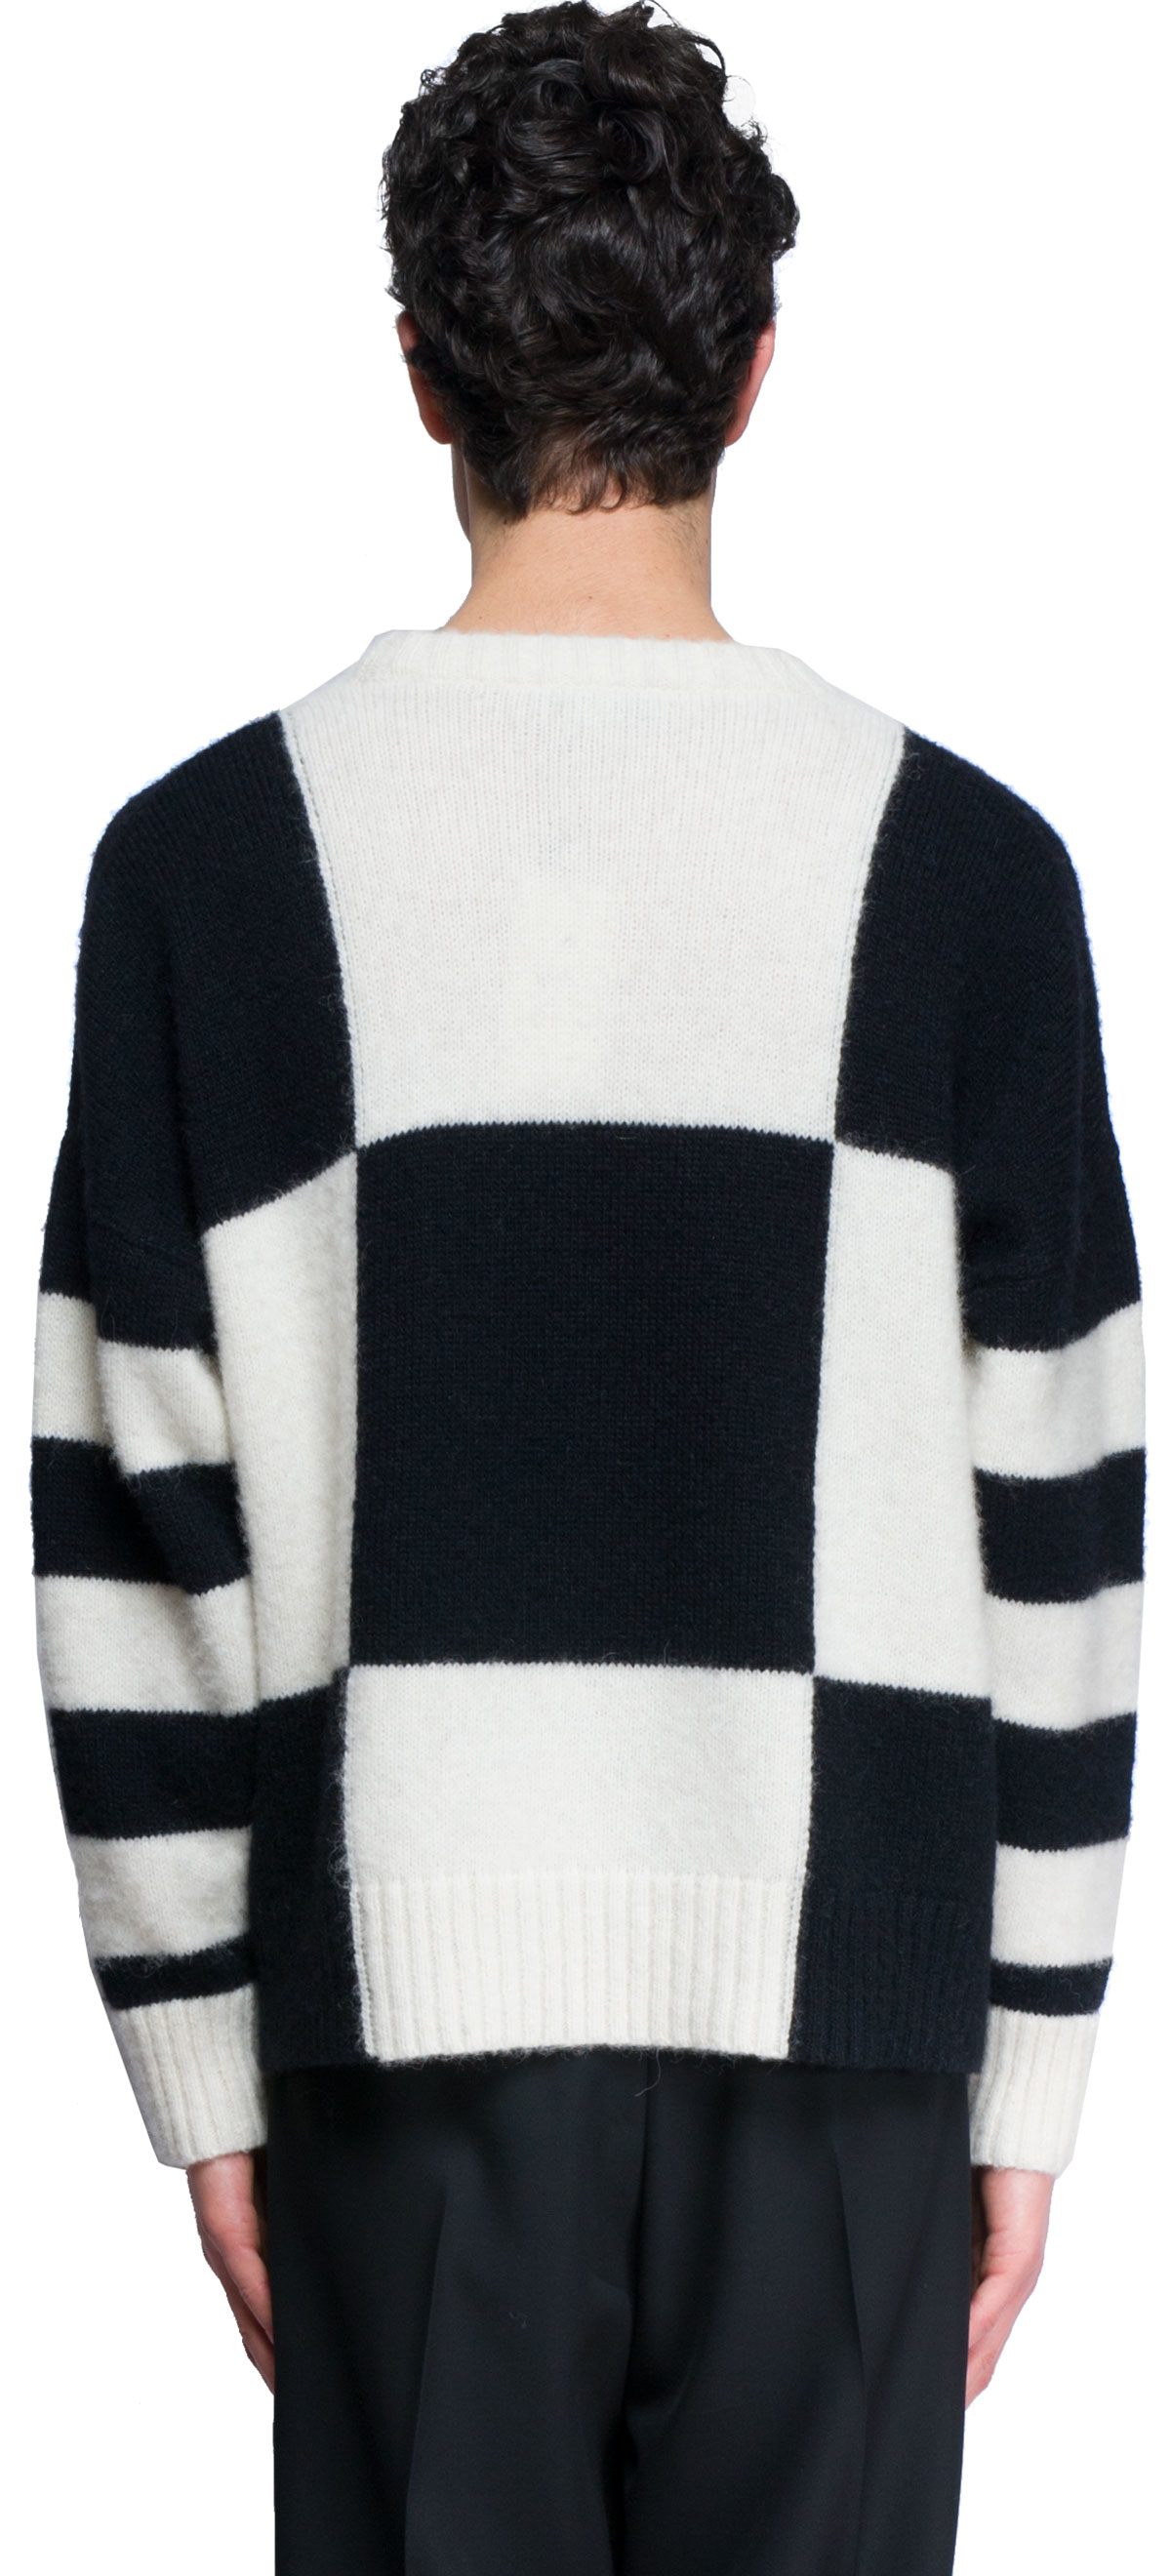 AMI Synthetic Oversized Crew Neck Sweater in Black/White (Black) for Men